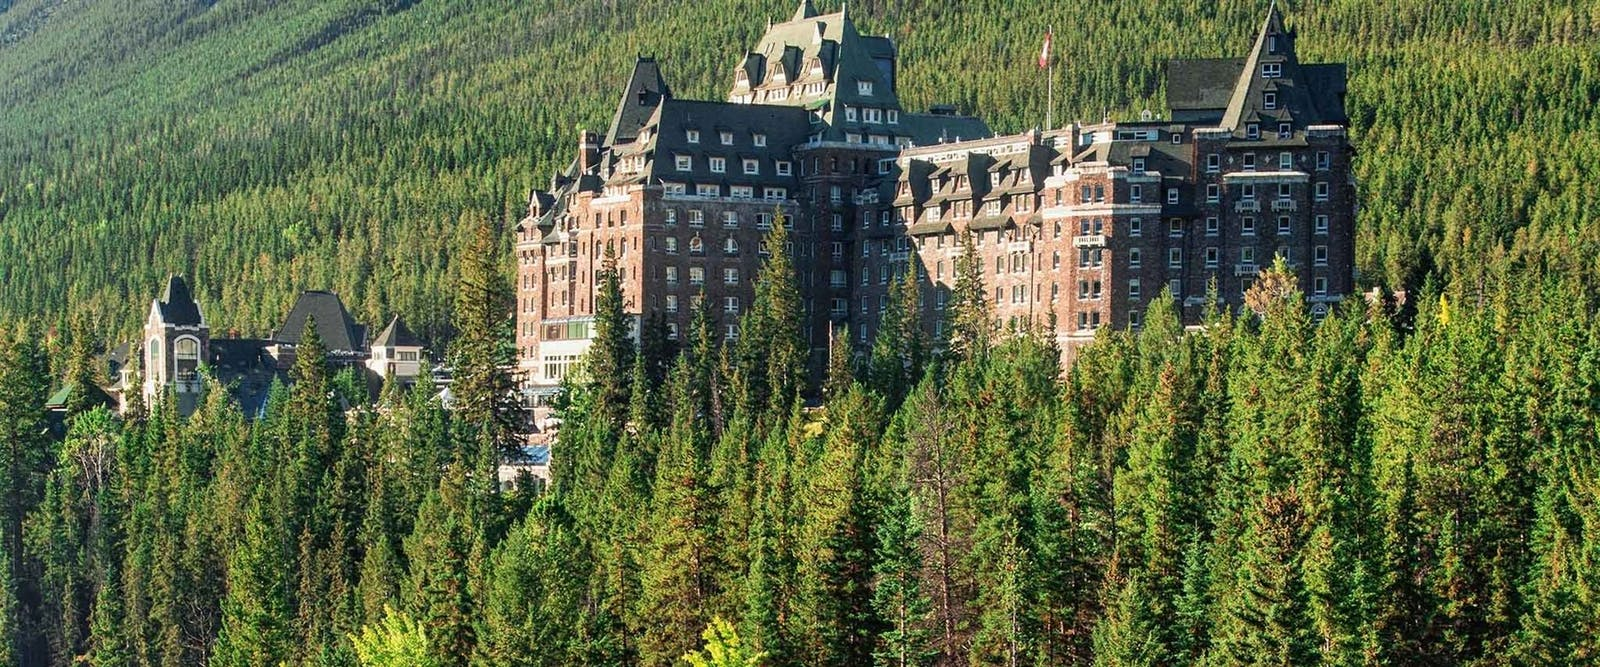 Aerial View of Fairmont Banff Springs, Alberta